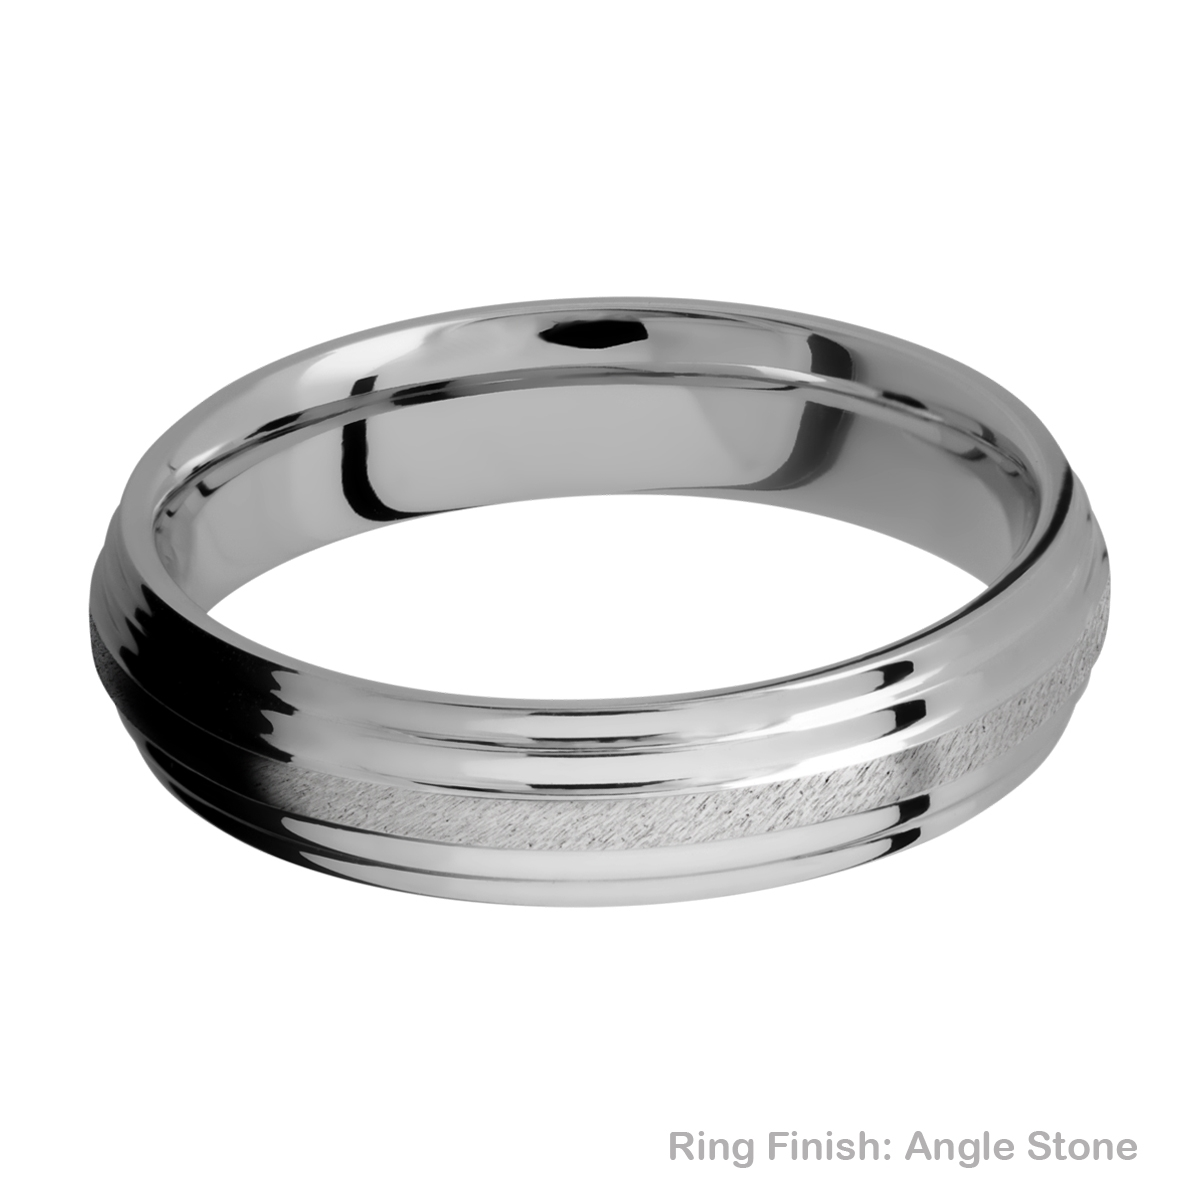 Lashbrook 5F2S Titanium Wedding Ring or Band Alternative View 9